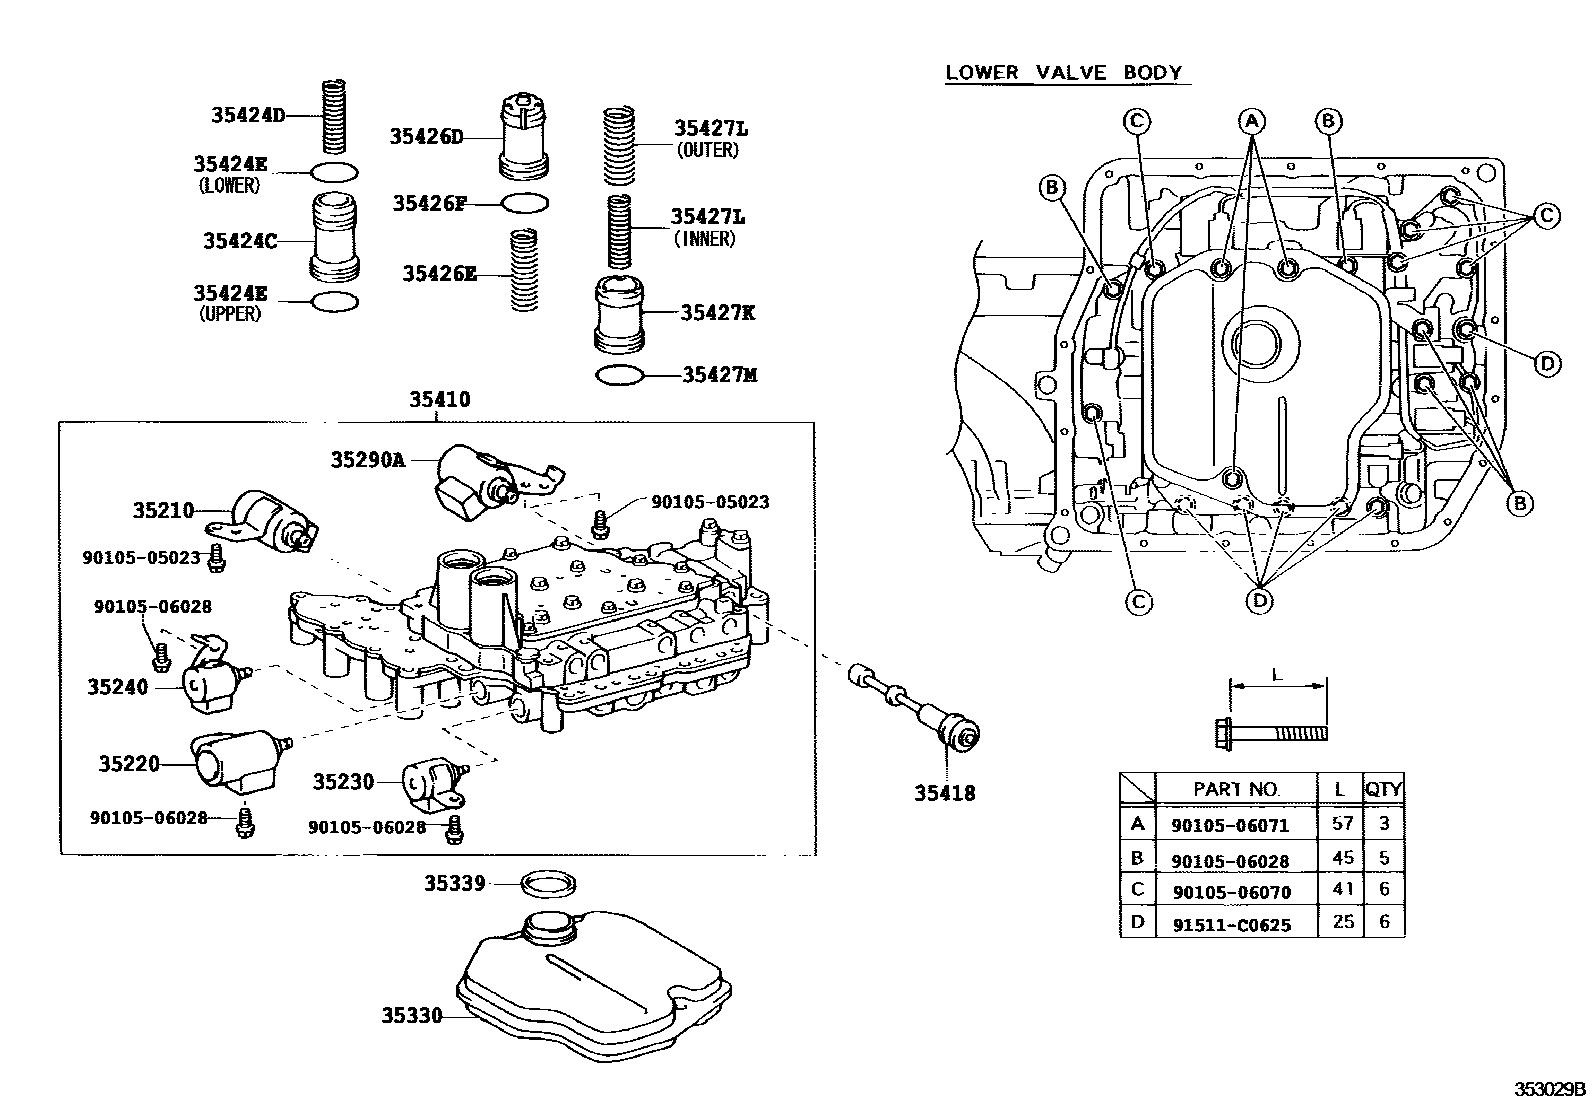 hight resolution of lexus transmission diagrams wiring diagram repair guides lexus transmission diagrams